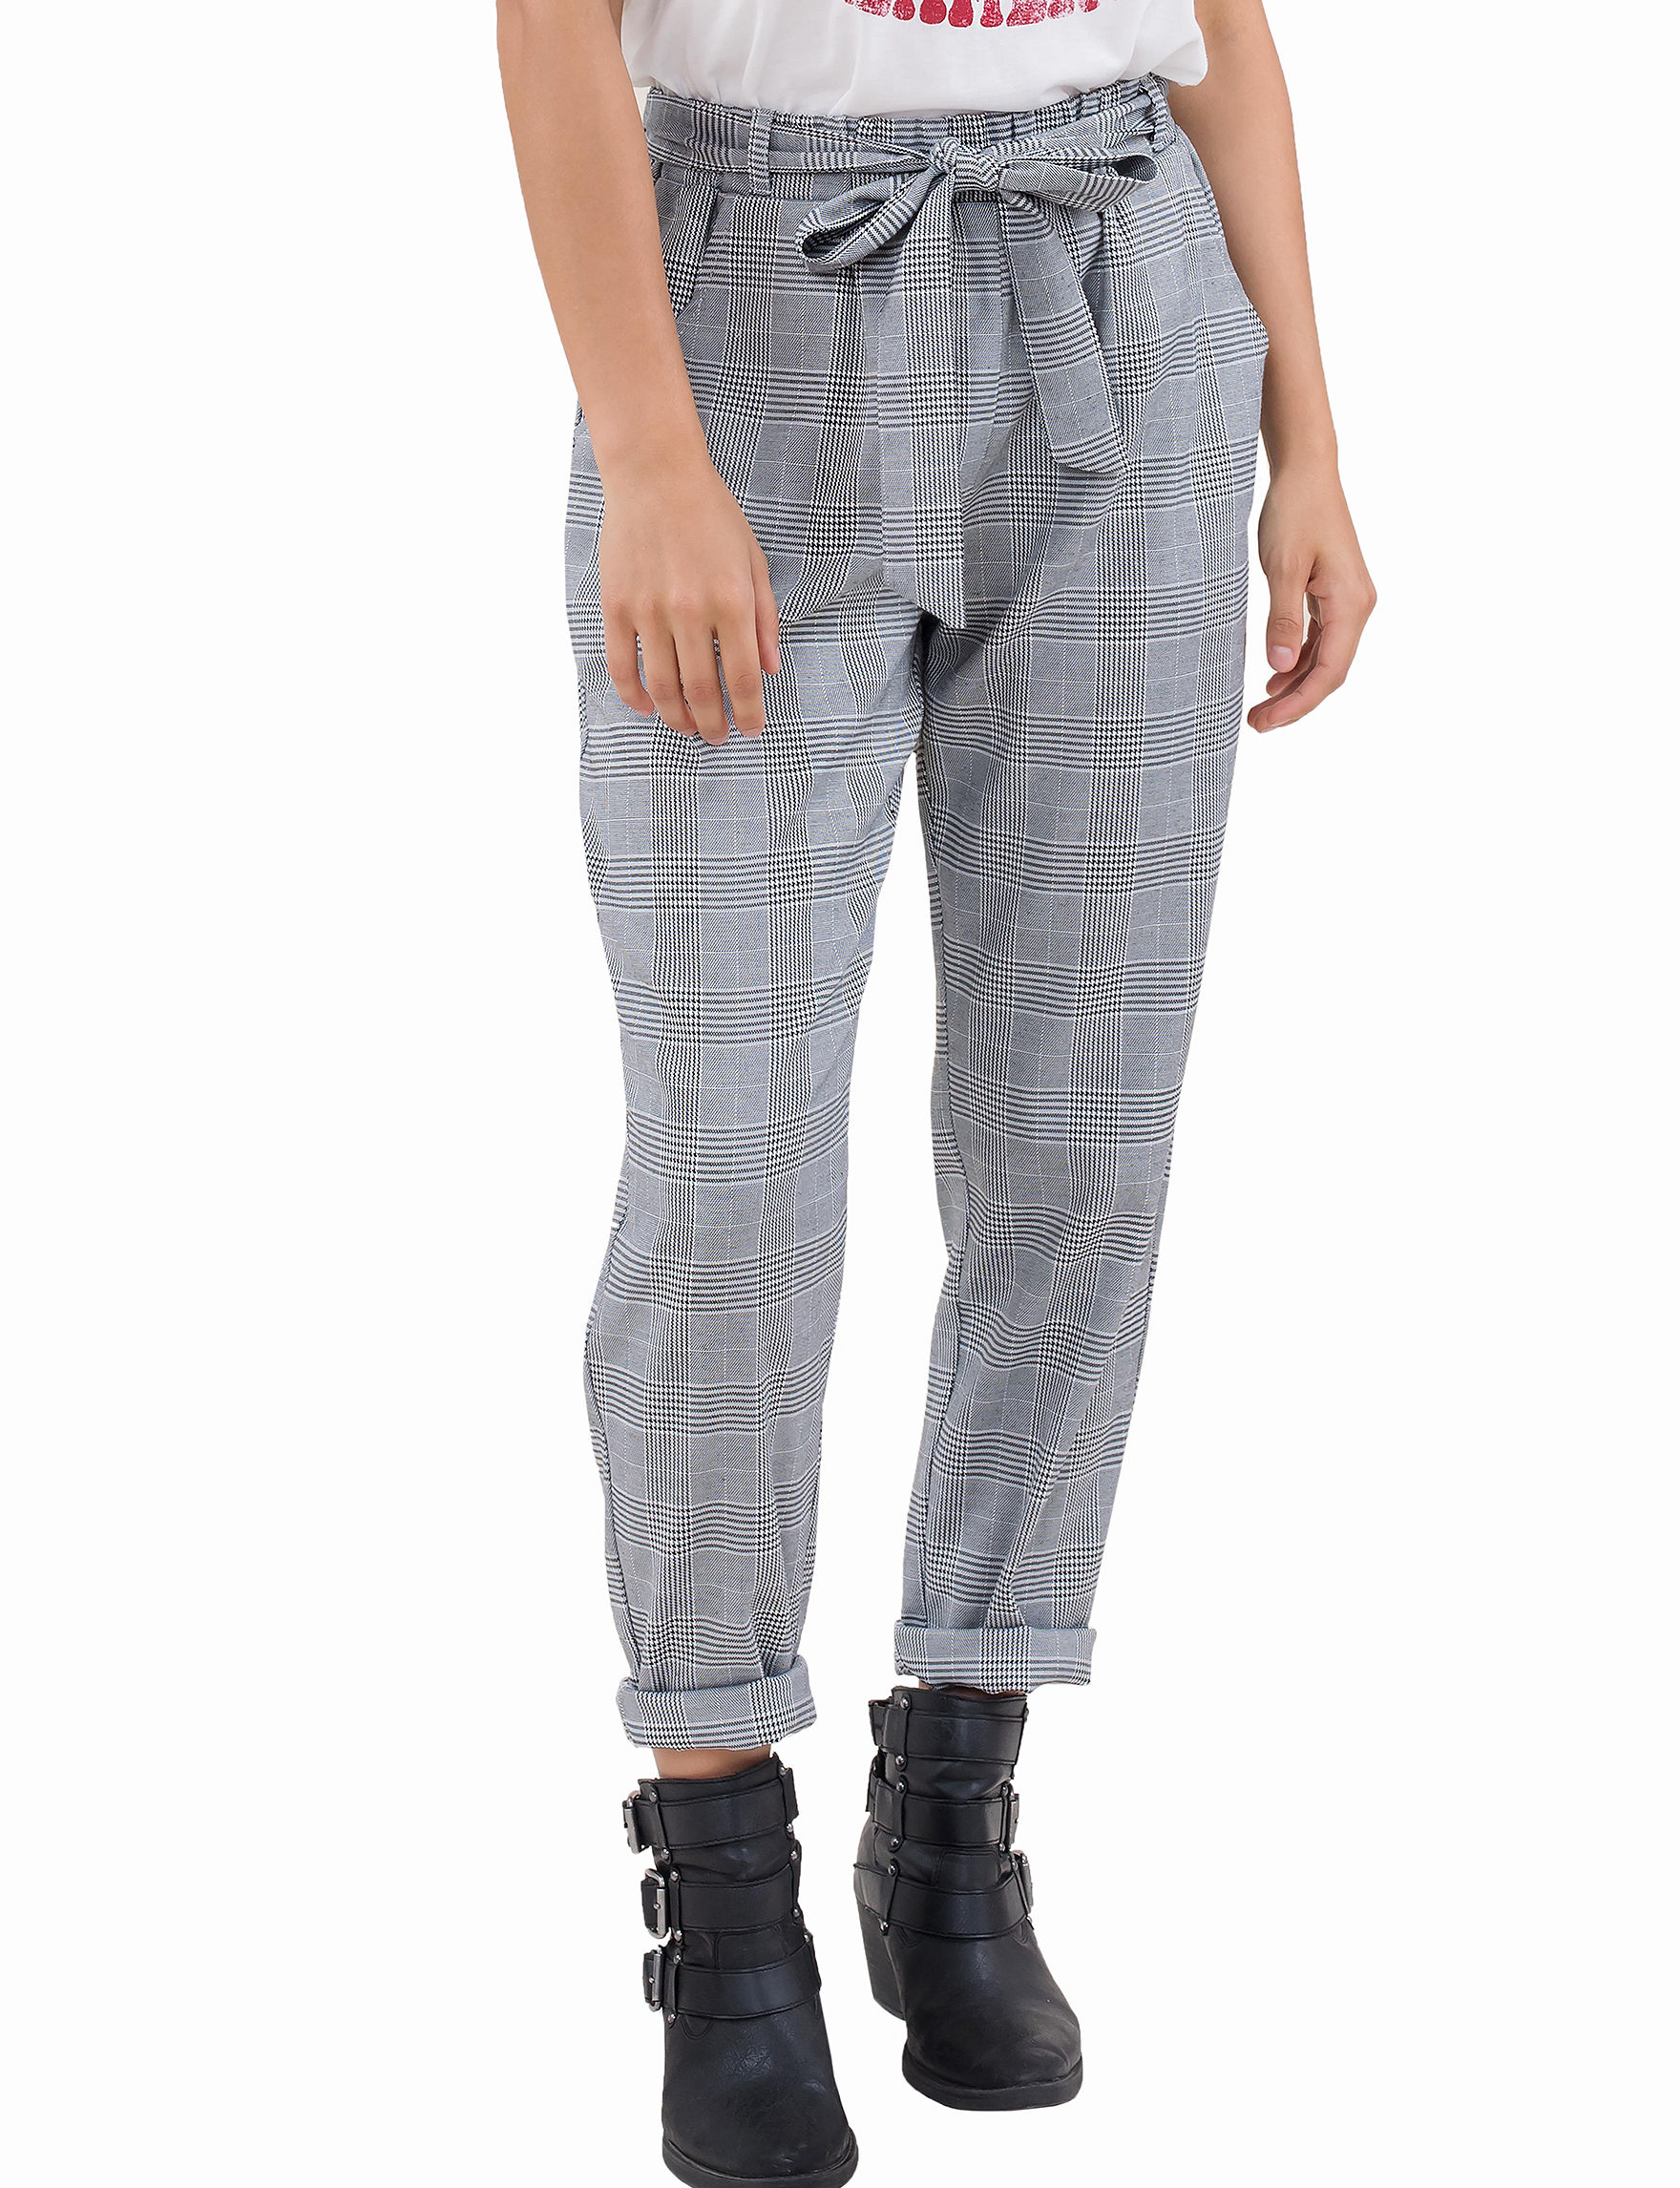 C + J Collections Grey Skinny